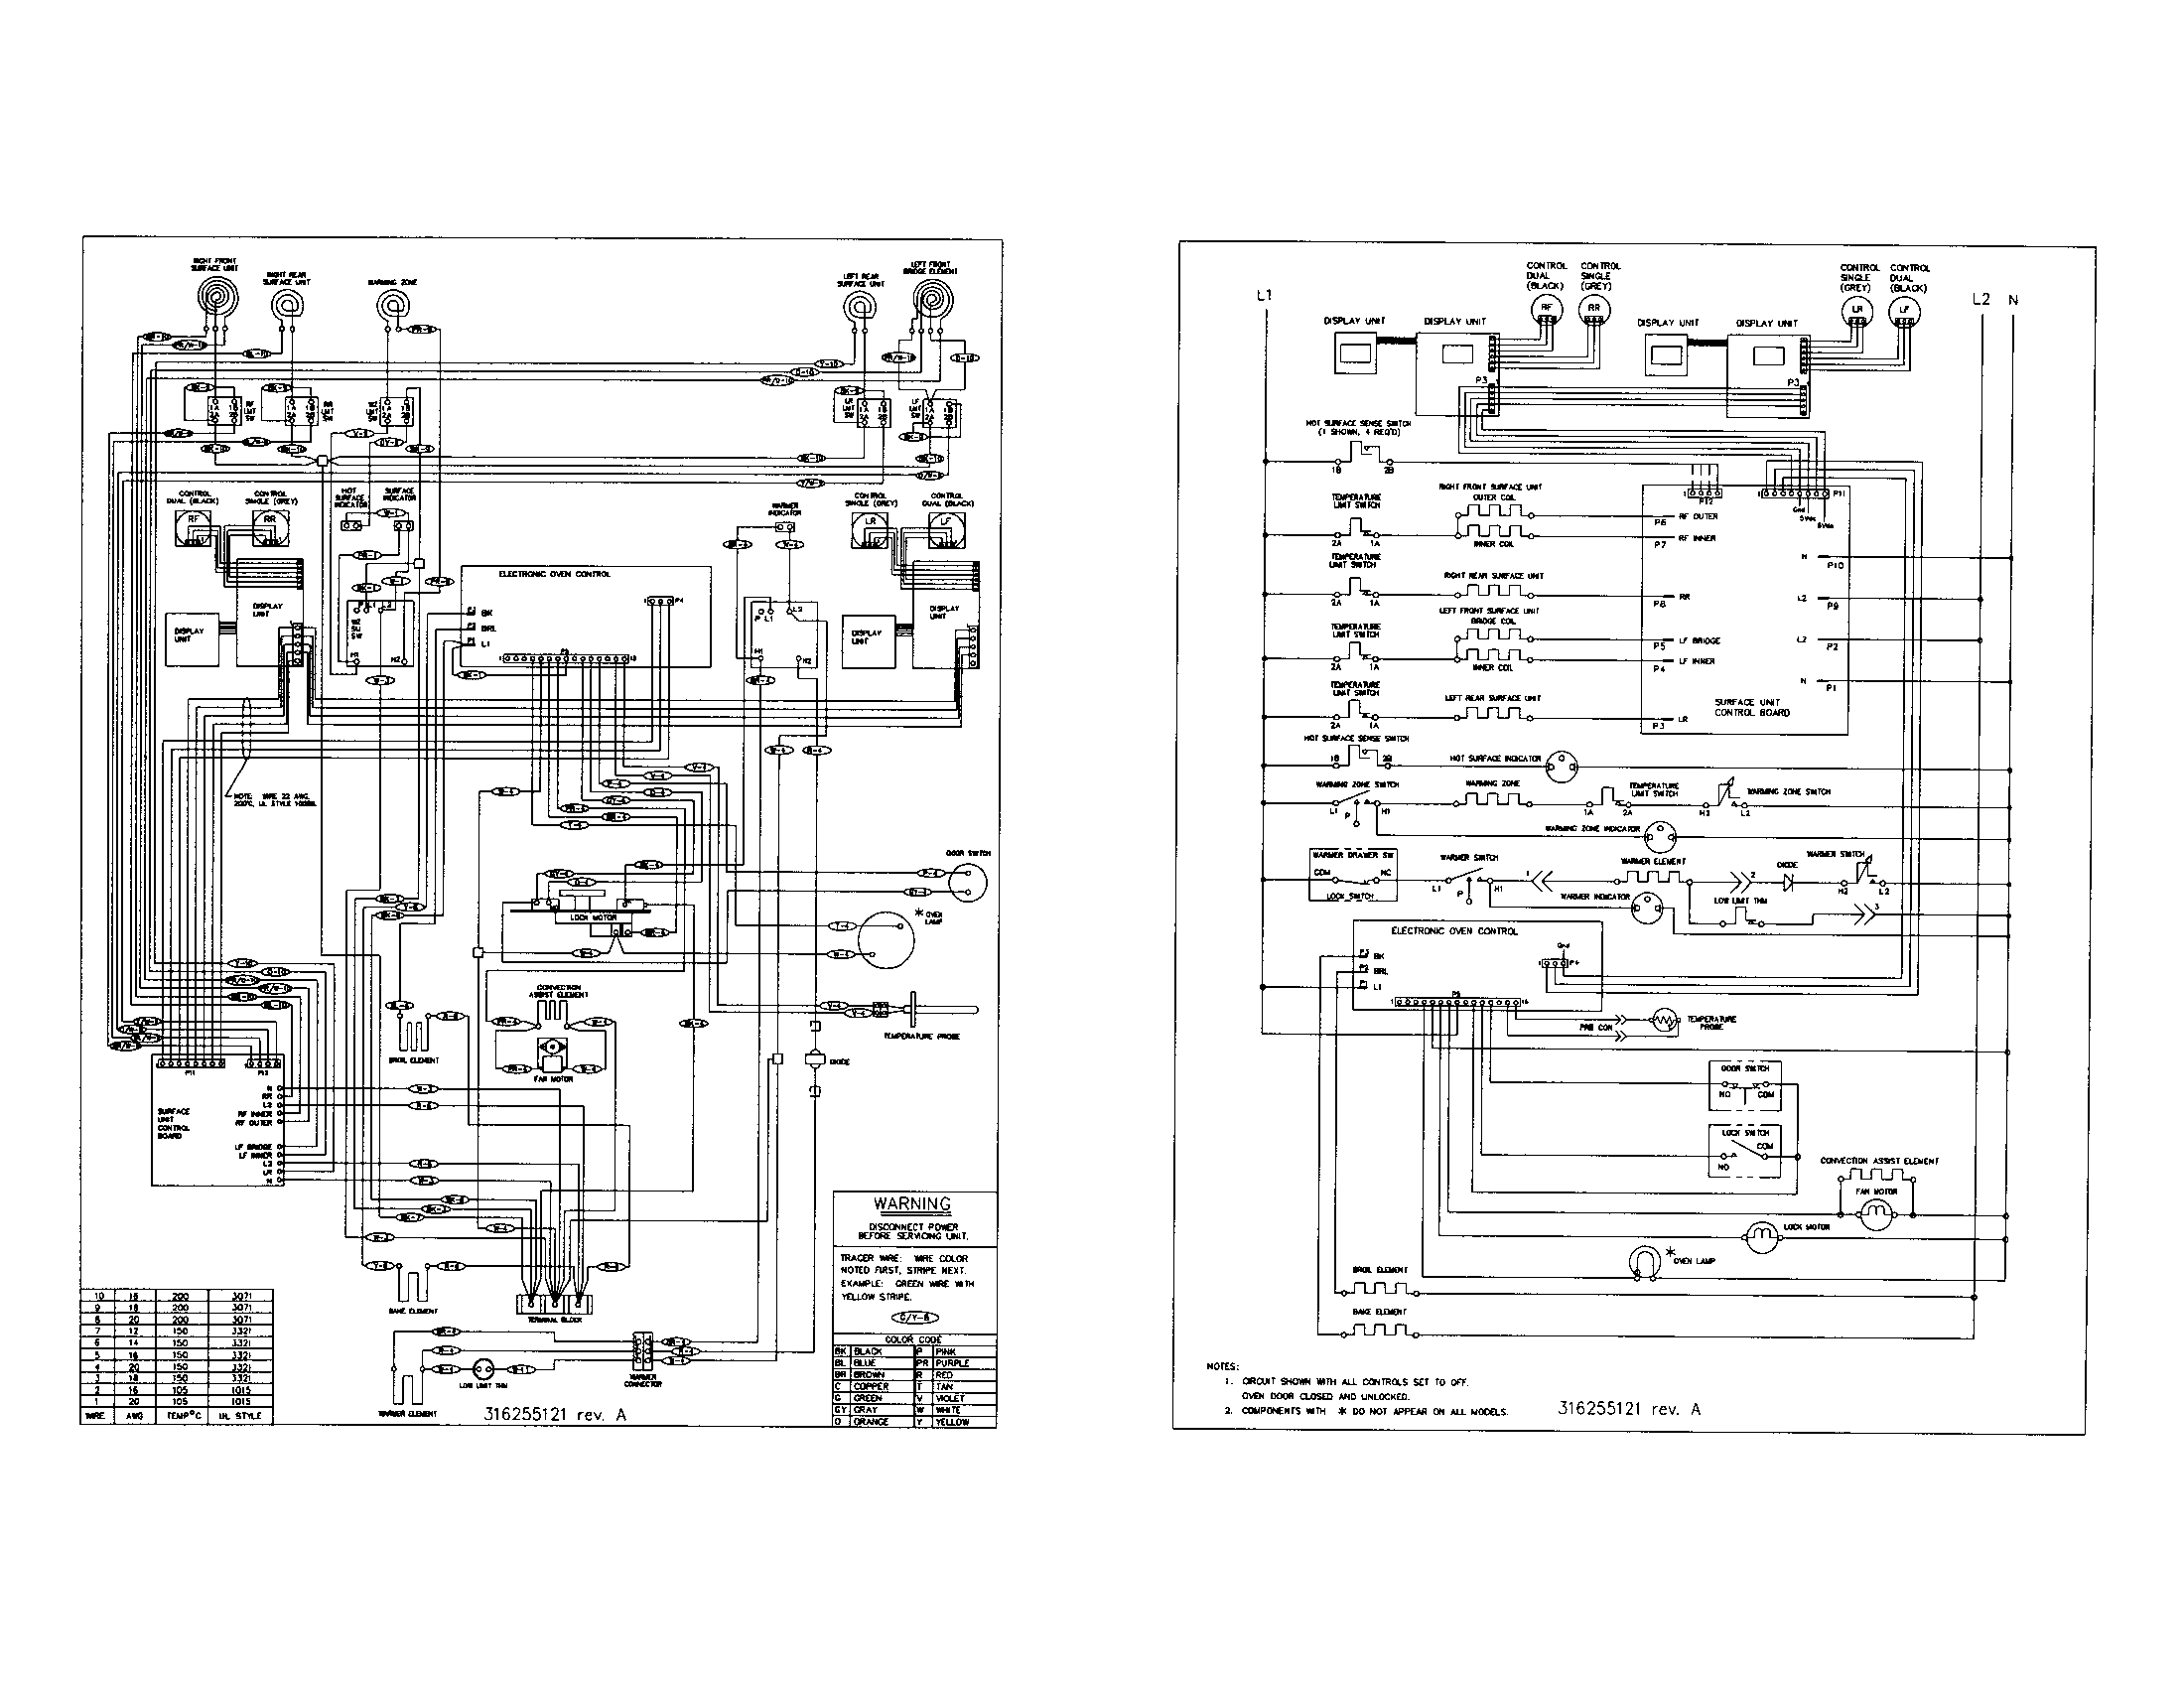 wiring-diagram-parts Kenmore Elite Defrost Timer Wiring Diagram on